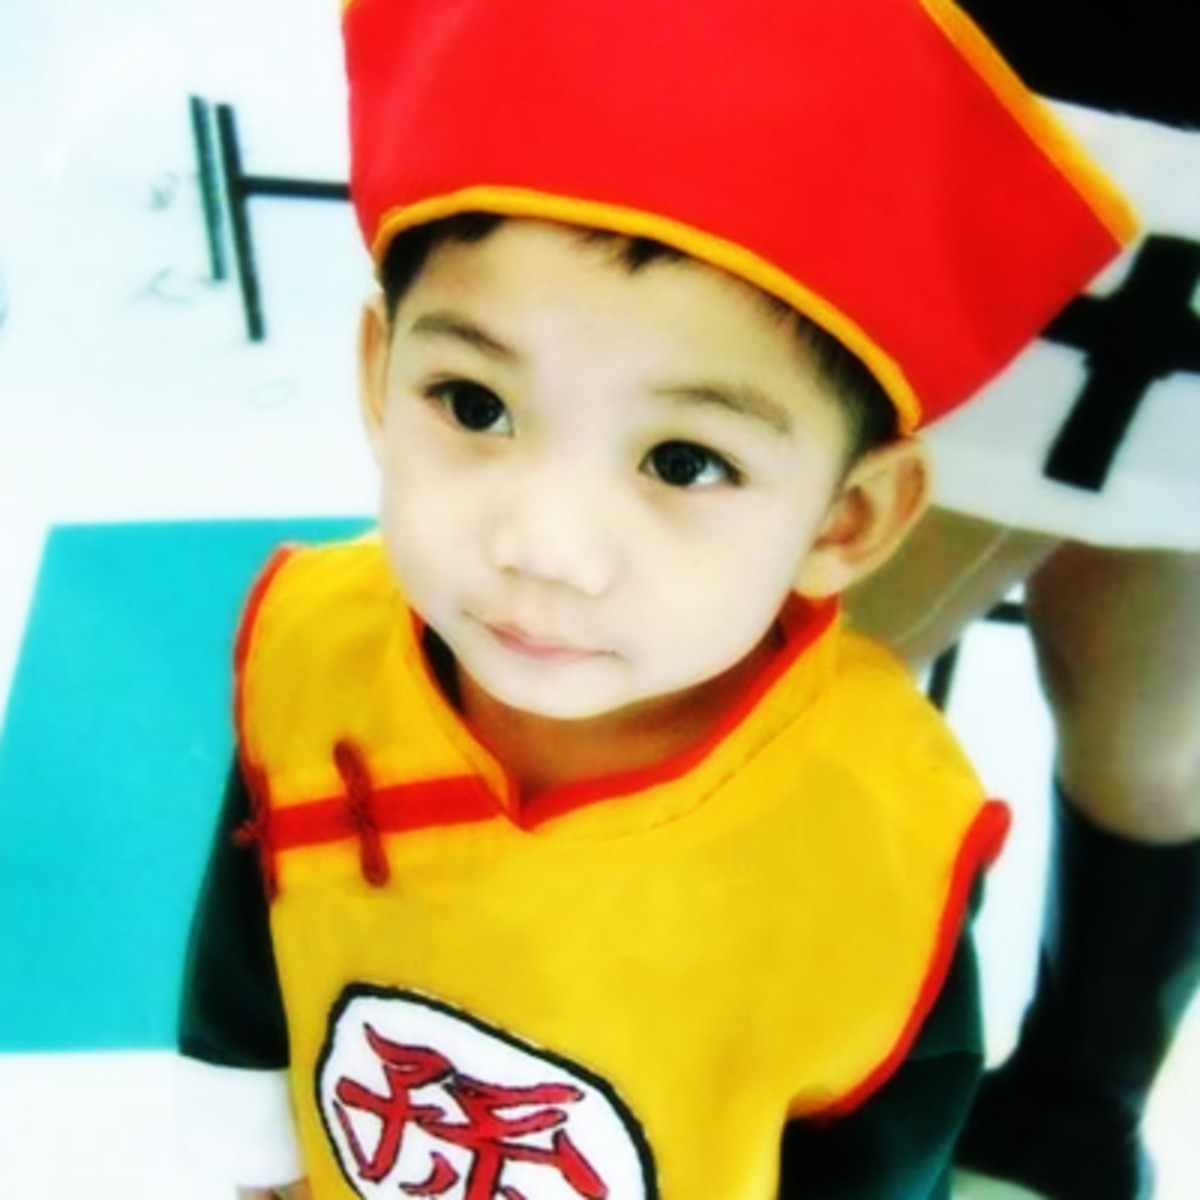 Dressing as Son Gohan involves a hat, which saves you the effort of styling your kid's hair.